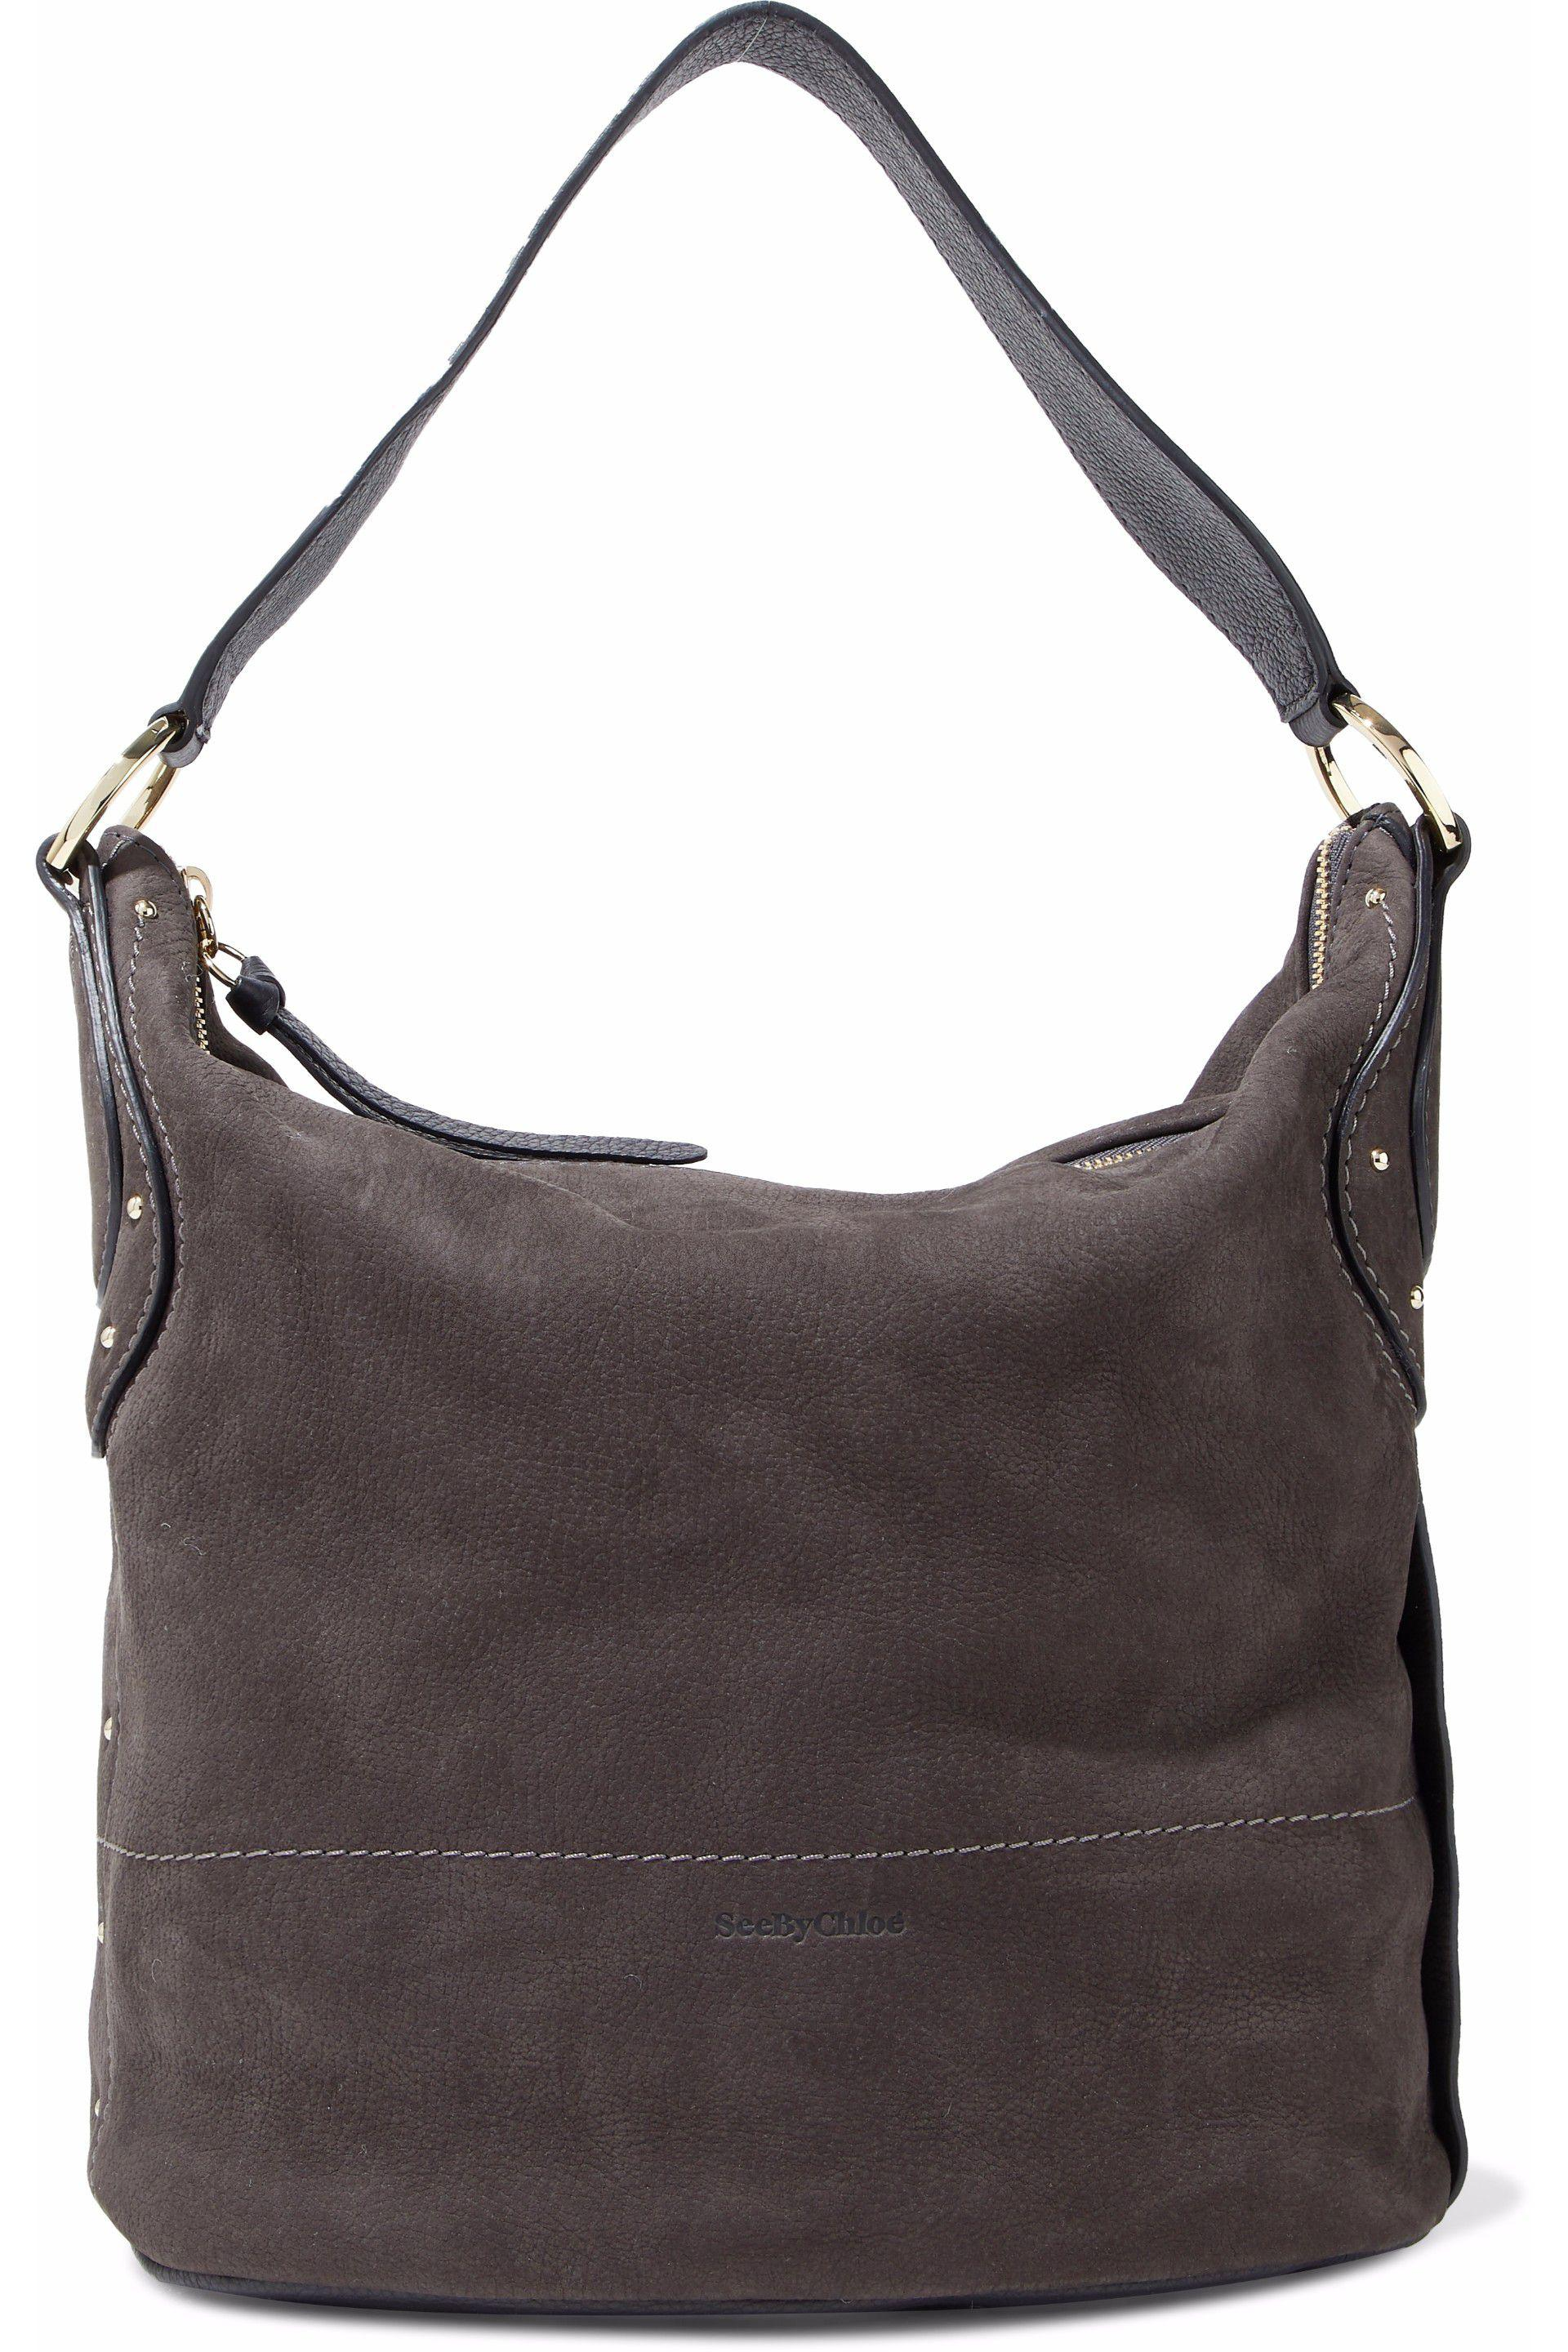 869b54a437cf Lyst - See By Chloé Janis Large Nubuck Shoulder Bag Dark Gray in Gray